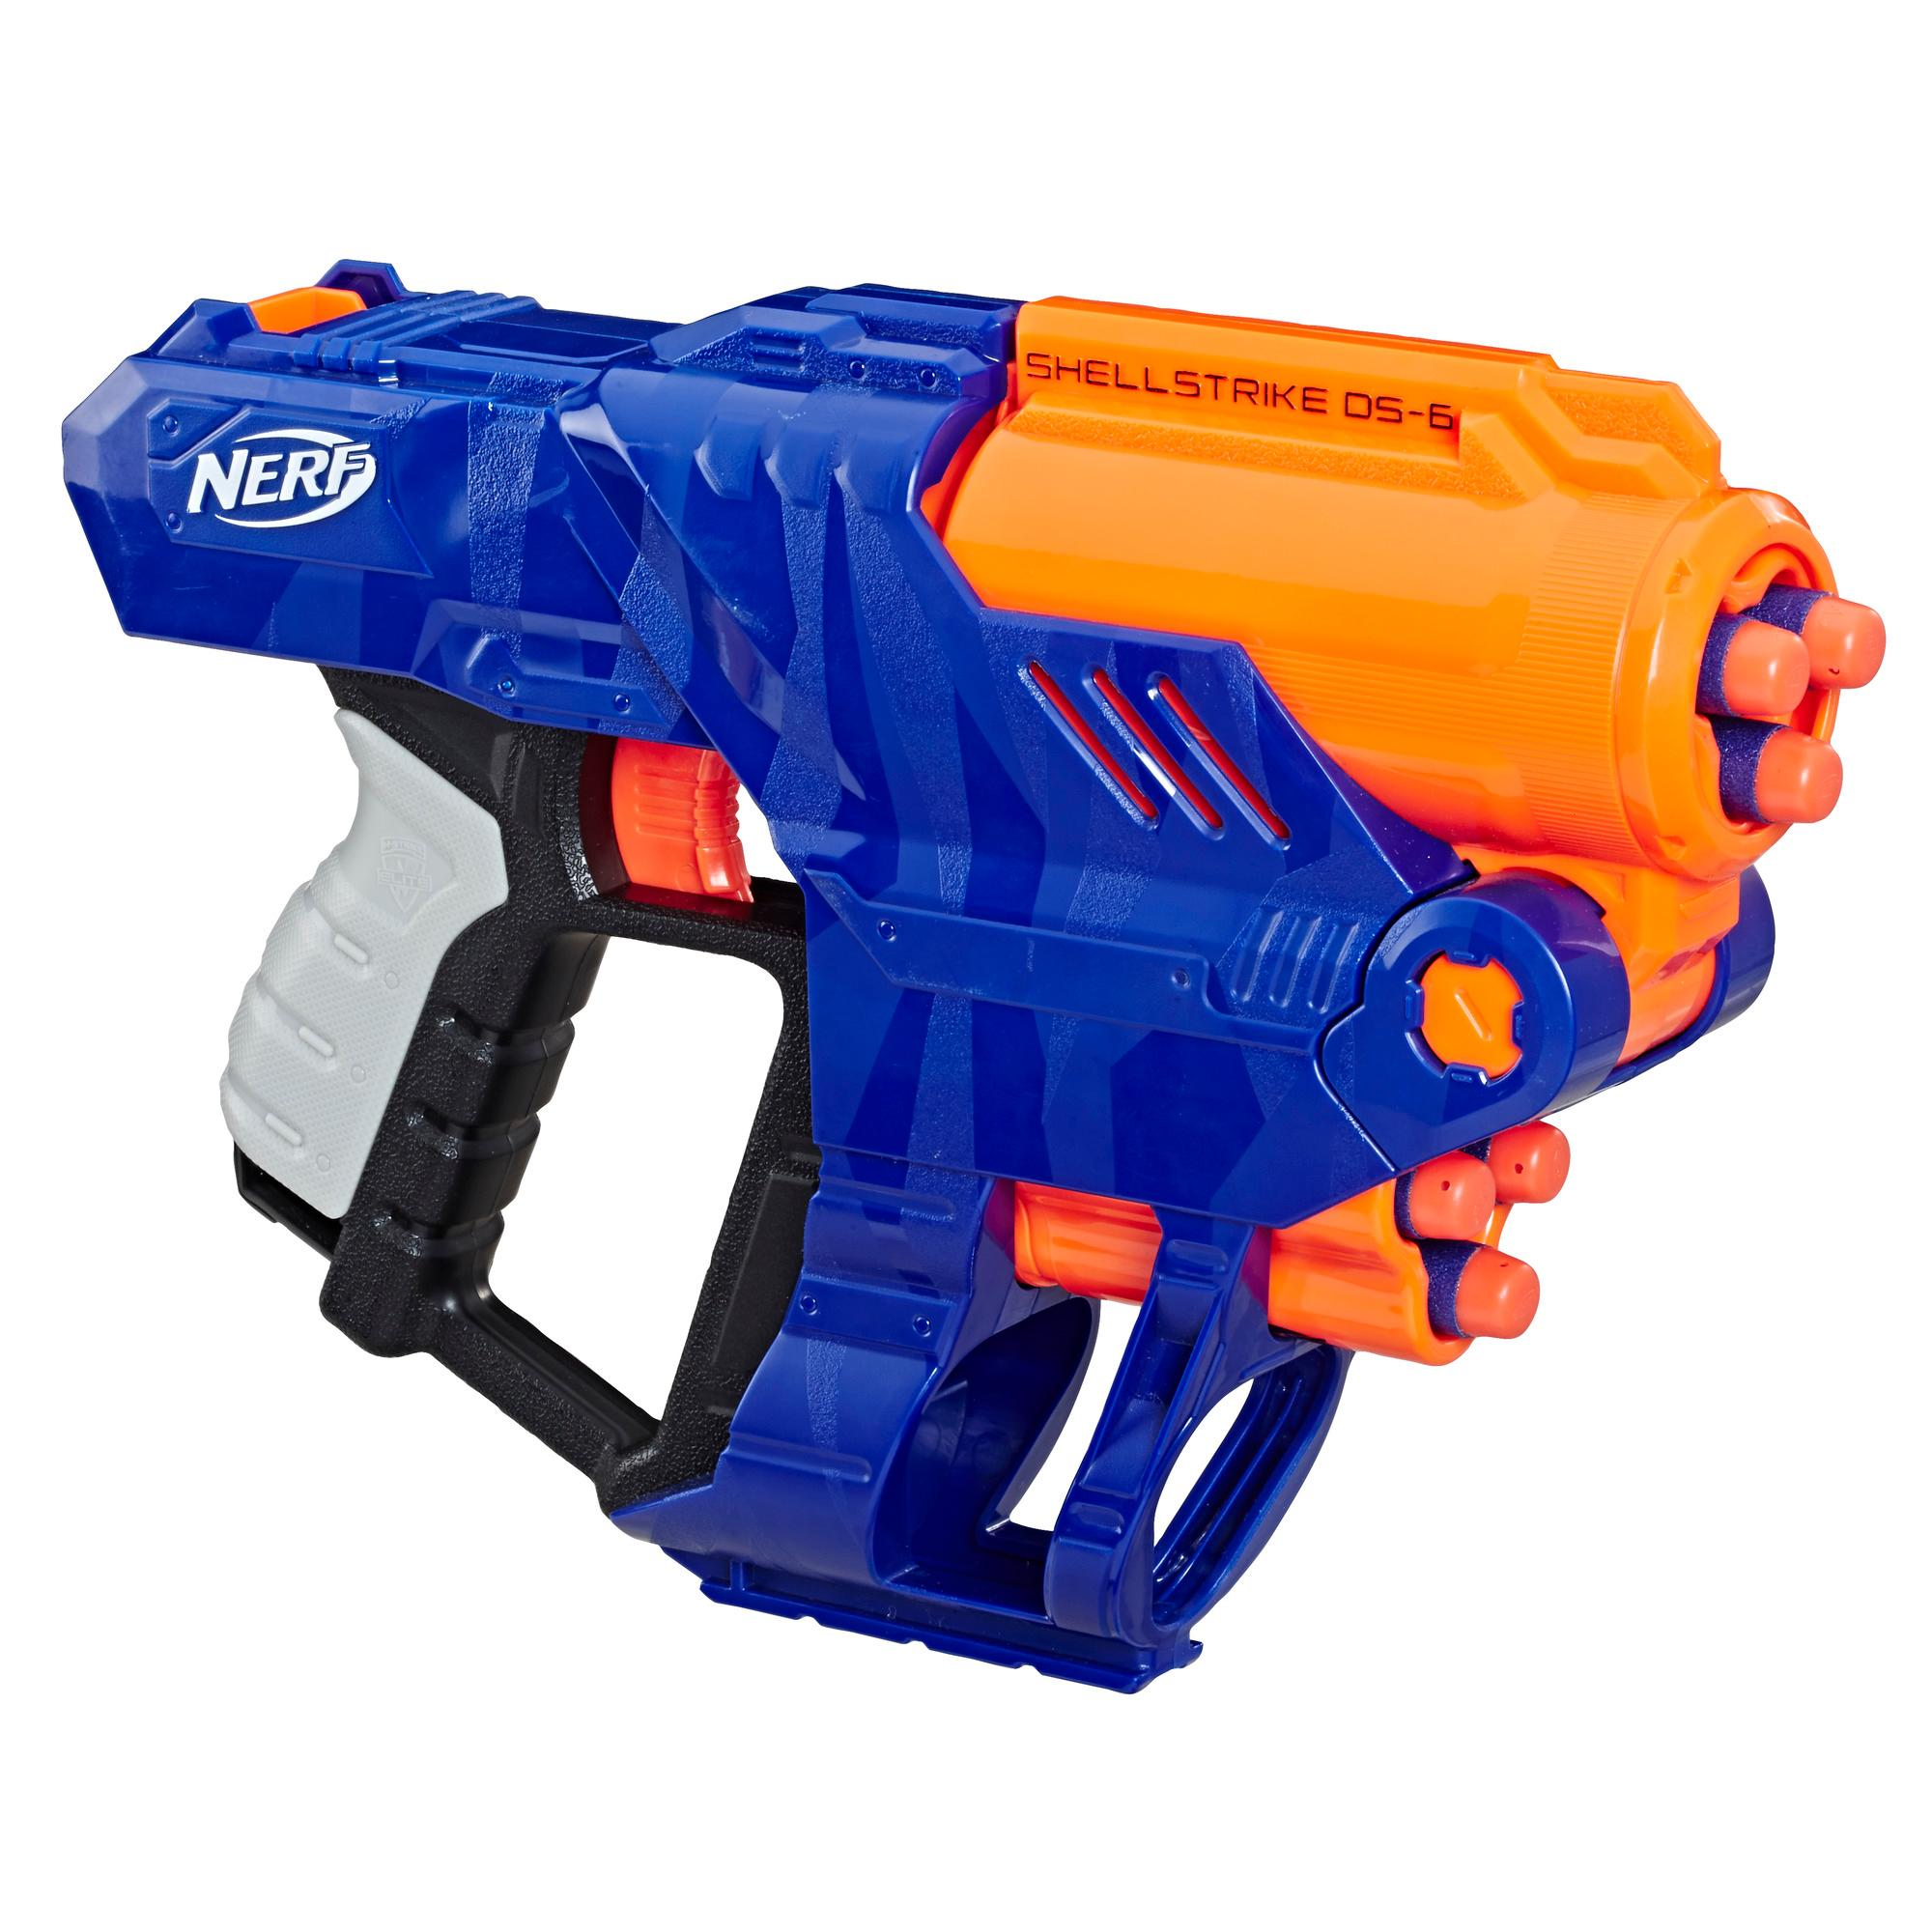 Blaster Nerf Elite Shellstrike DS-6